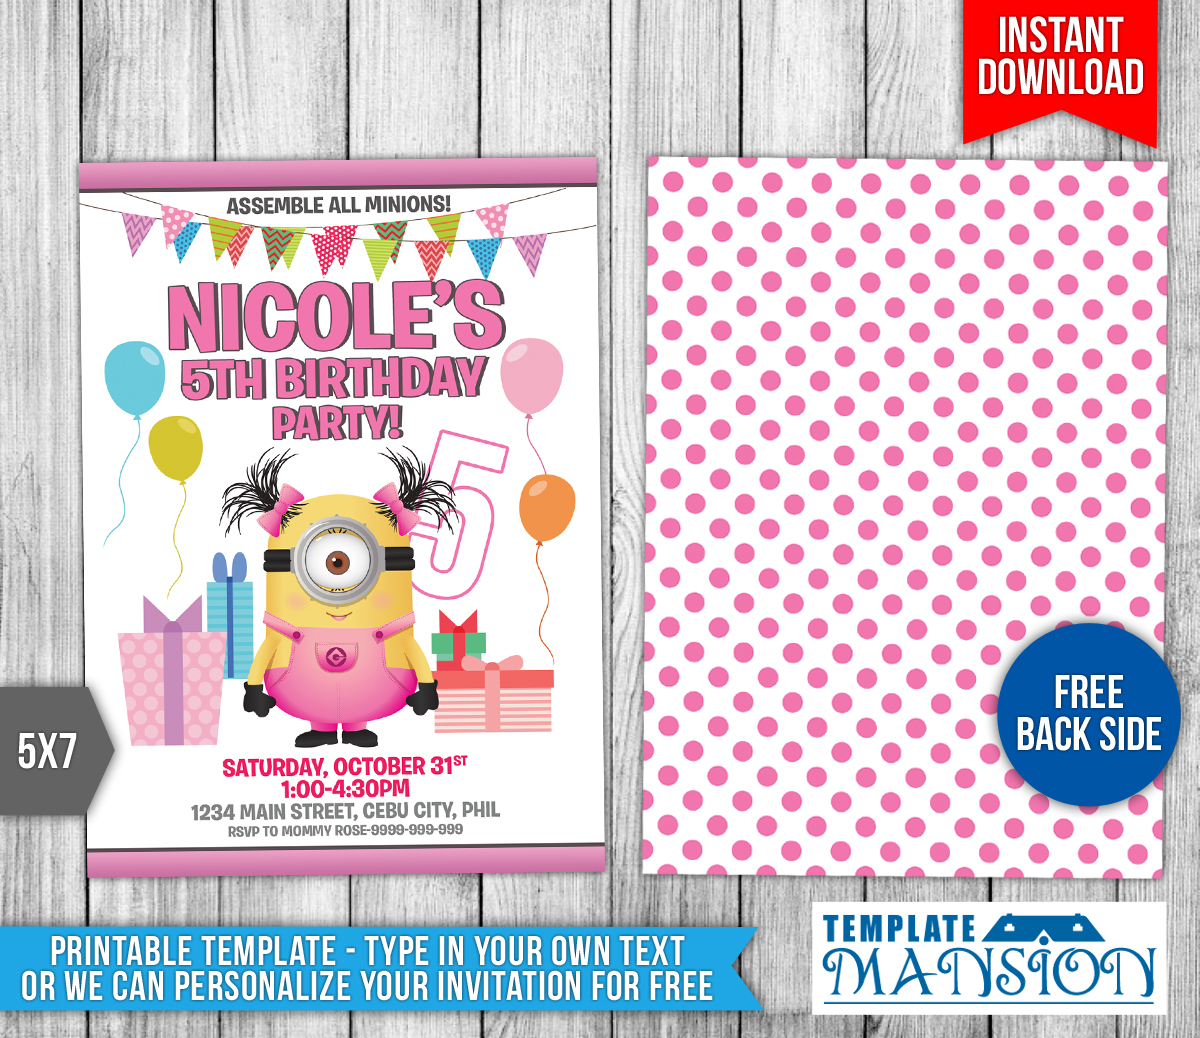 Girl Minion Birthday Invitation Template By Templatemansion On - Birthday invitation template minions